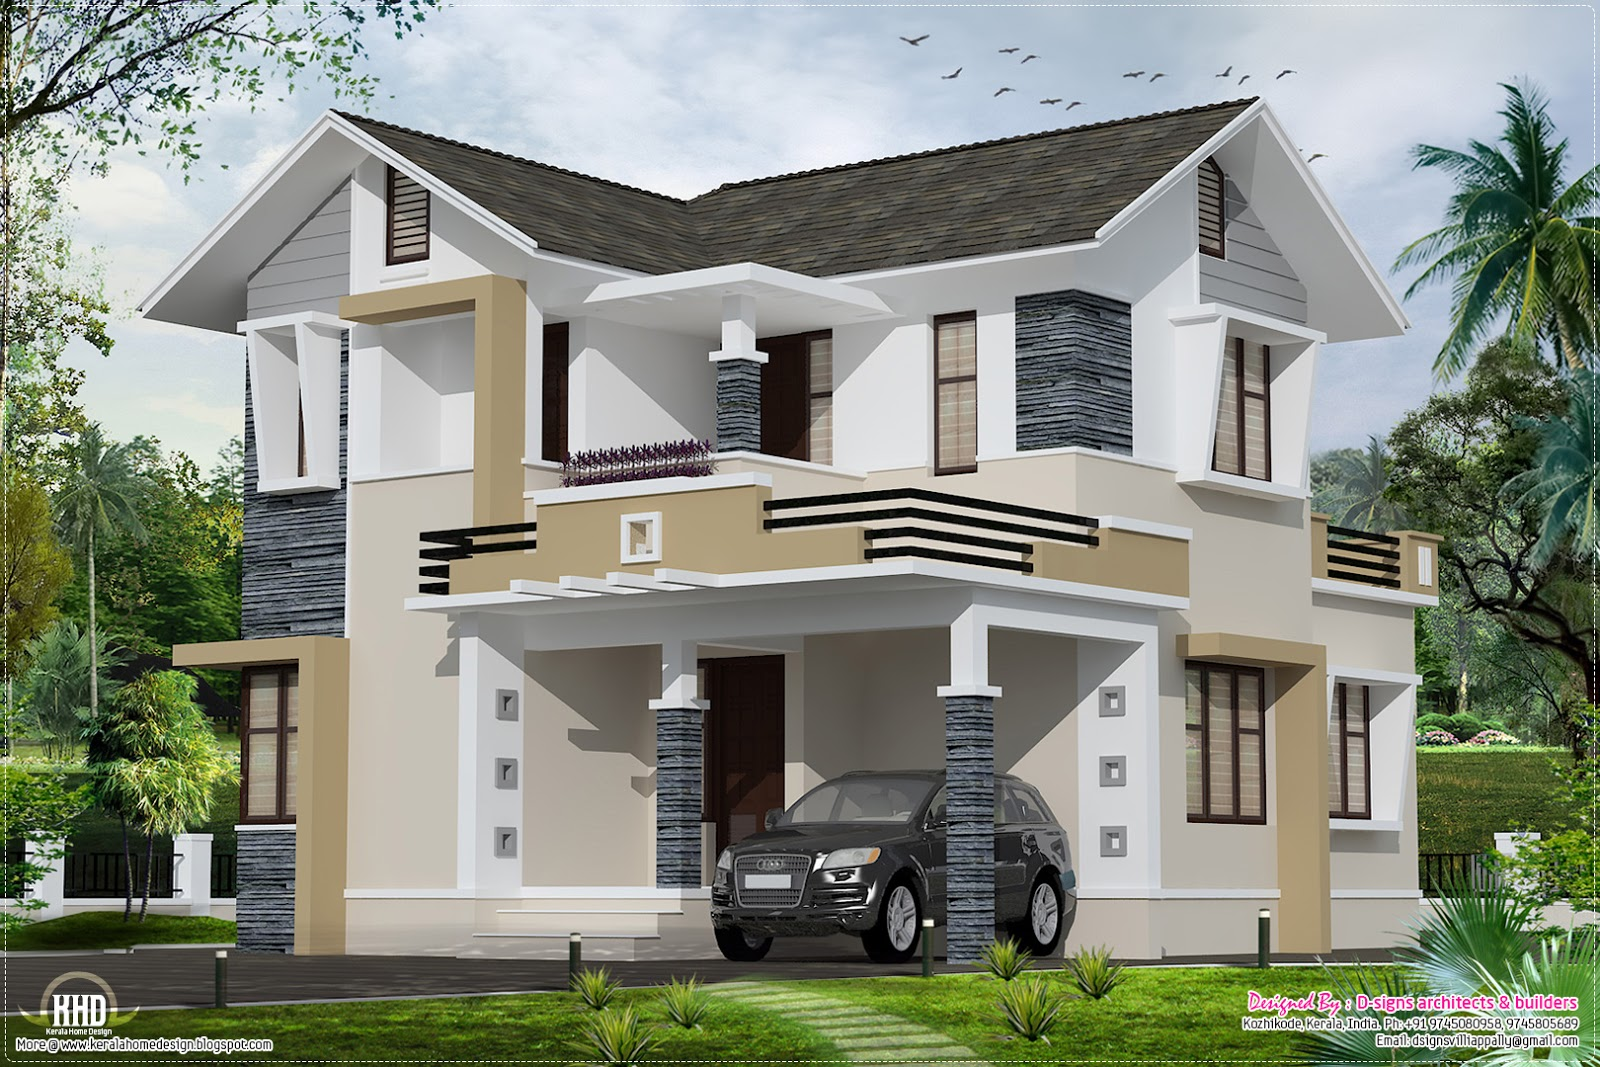 Stylish small home design kerala home design and floor plans Small house design